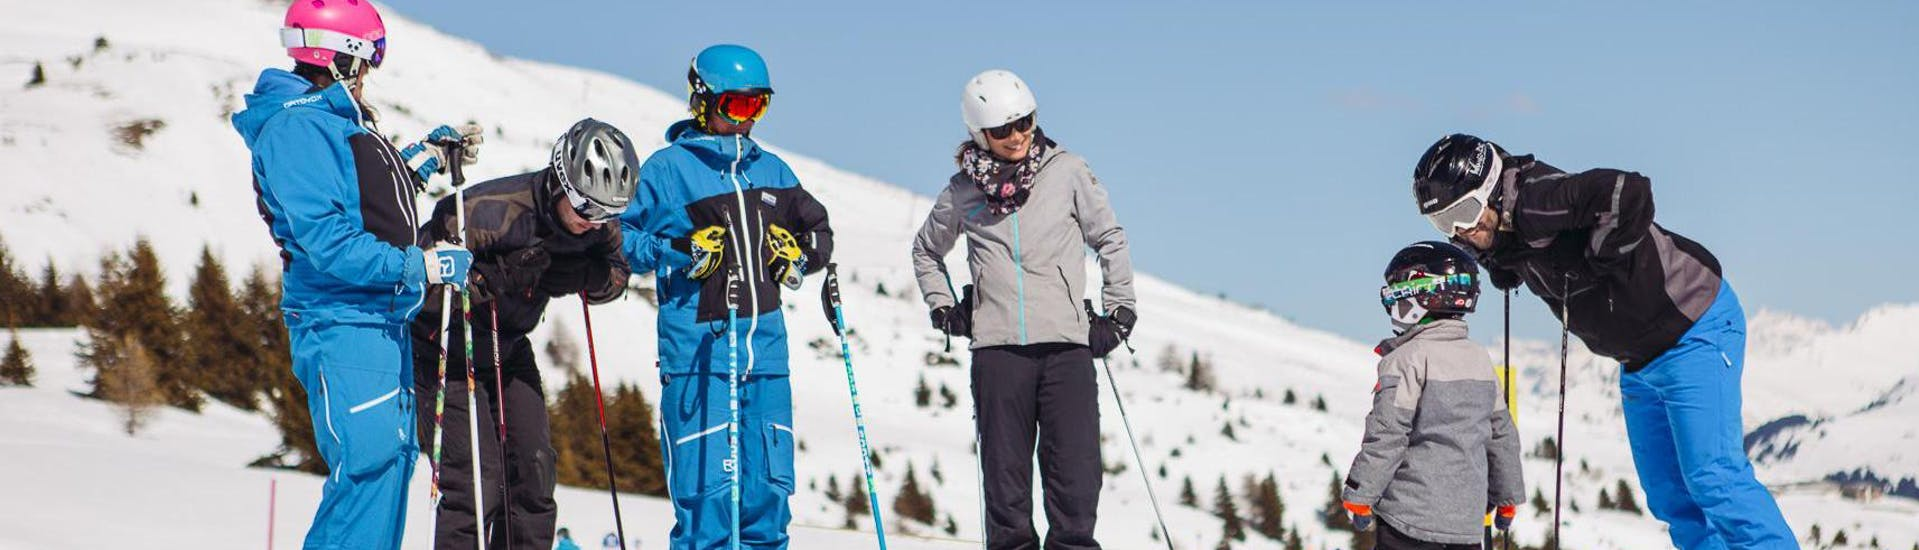 Private Ski Lessons for Families of All Levels